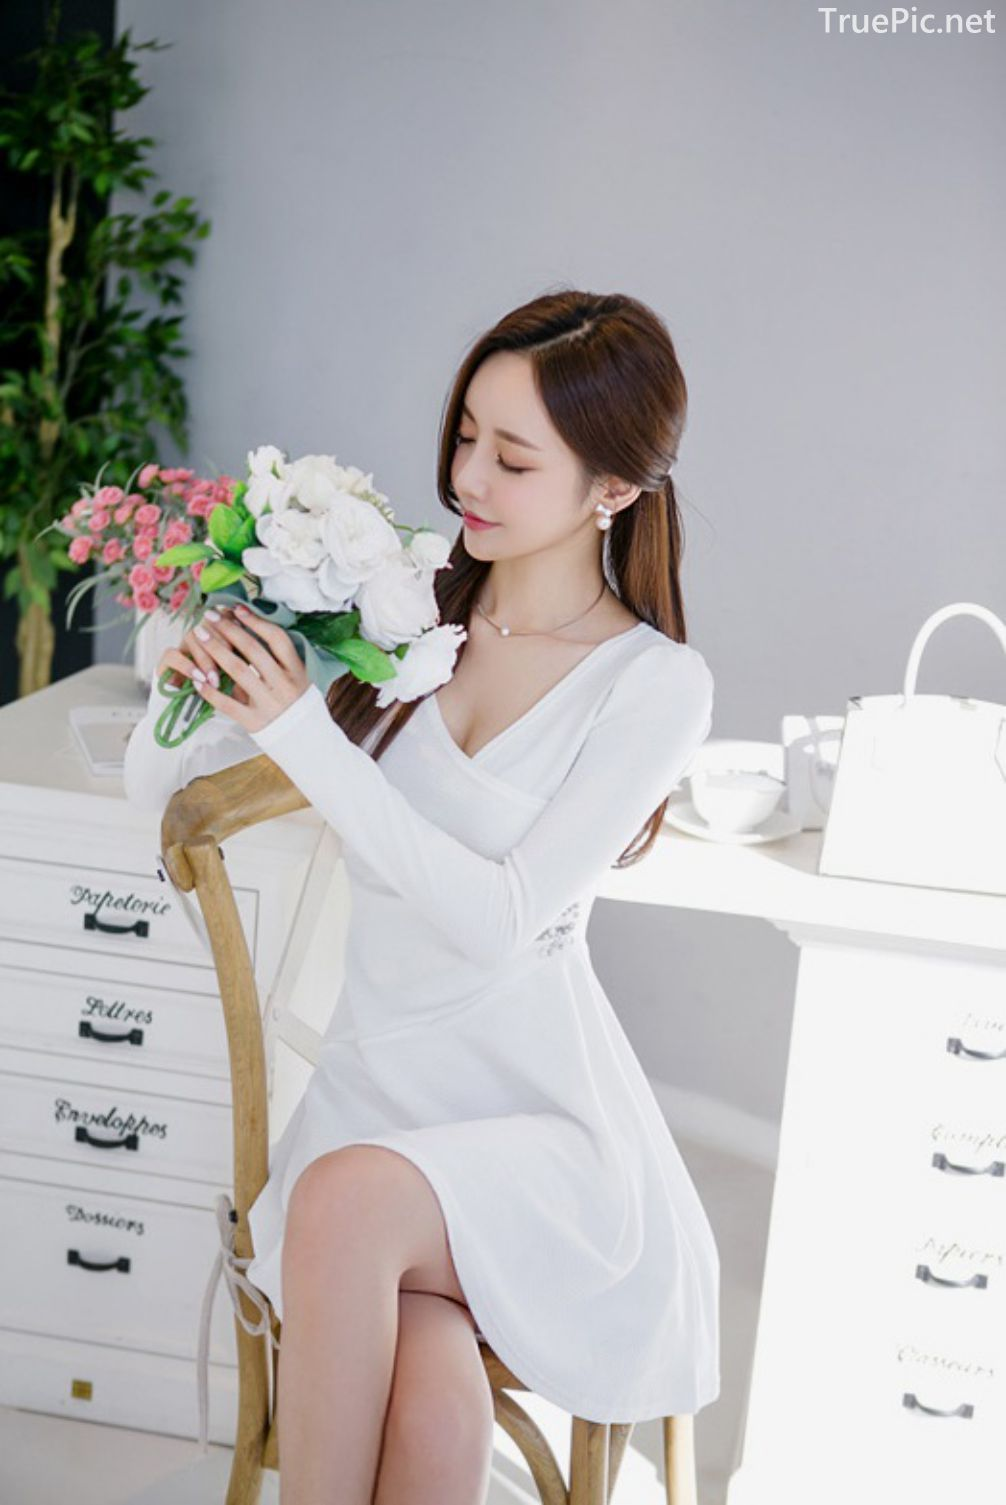 Son-Yoon-Joo-beautiful-photos-Indoor-Photoshoot-Collection-Korean-Fashion-and-Model-TruePic.net- Picture 2